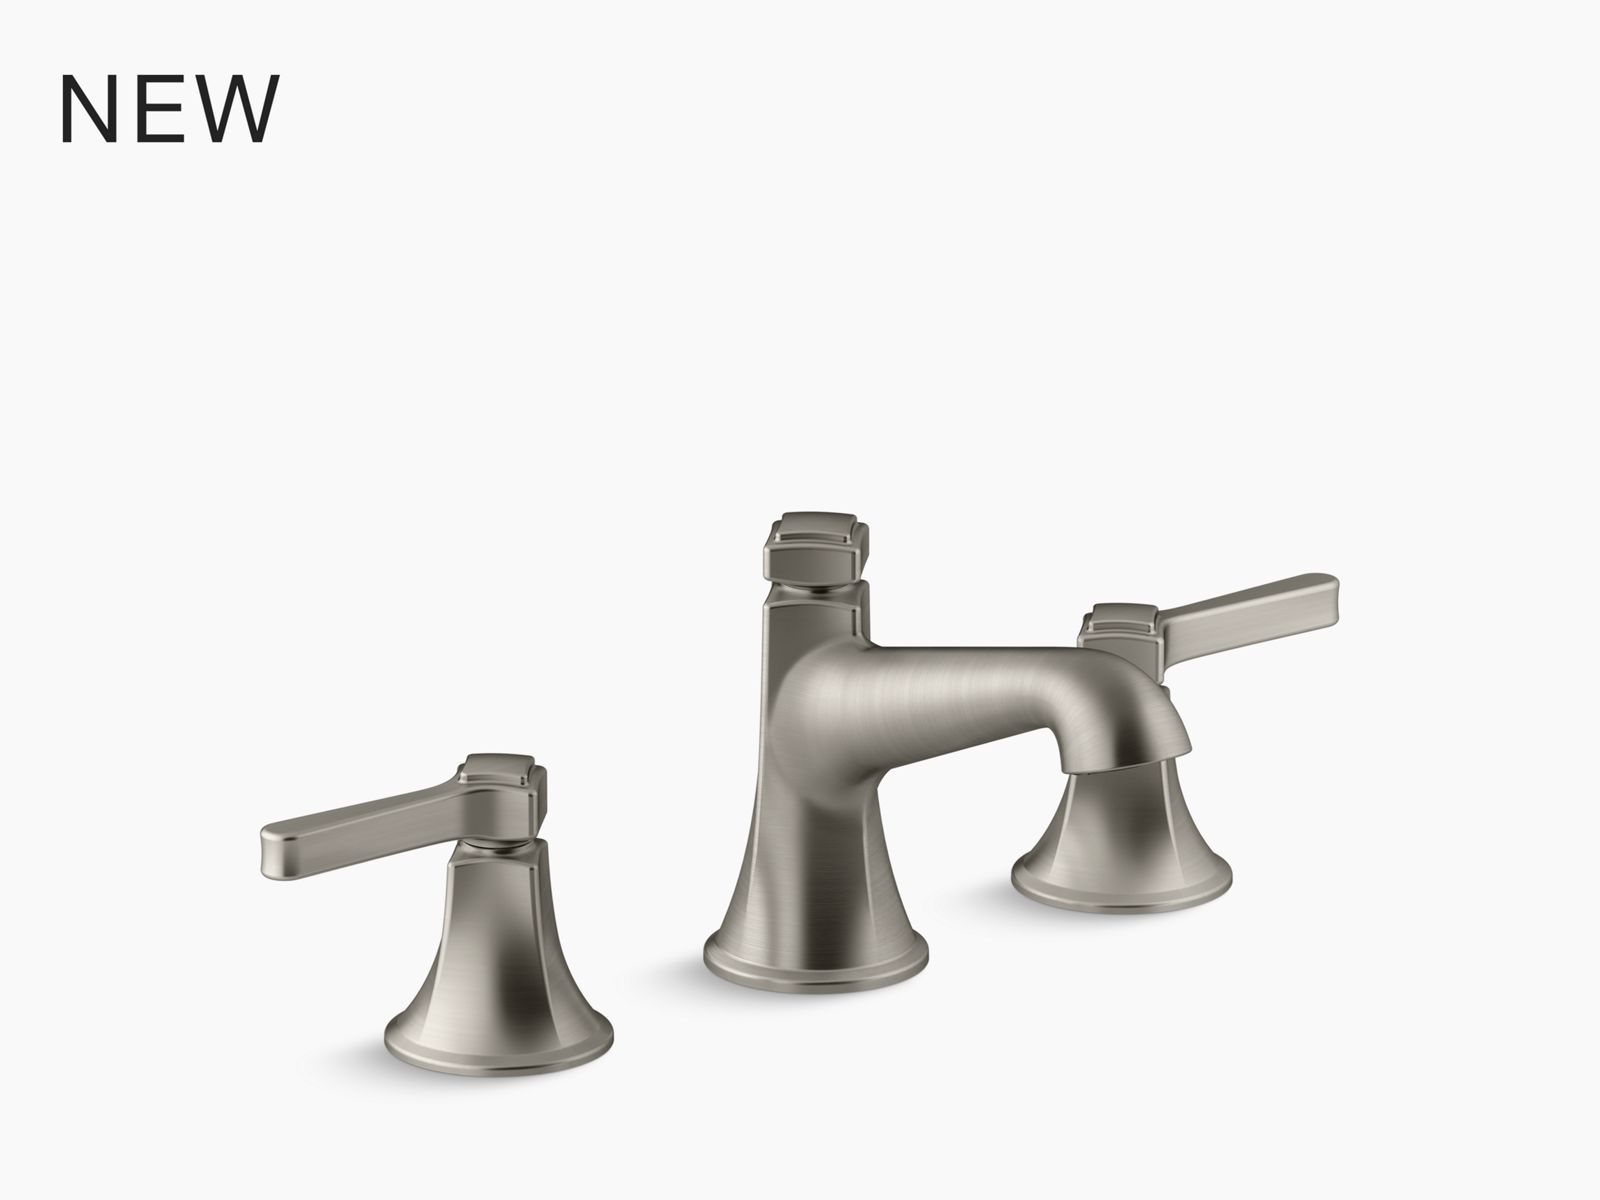 purist deck mount bath faucet trim for high flow valve with cross handles valve not included